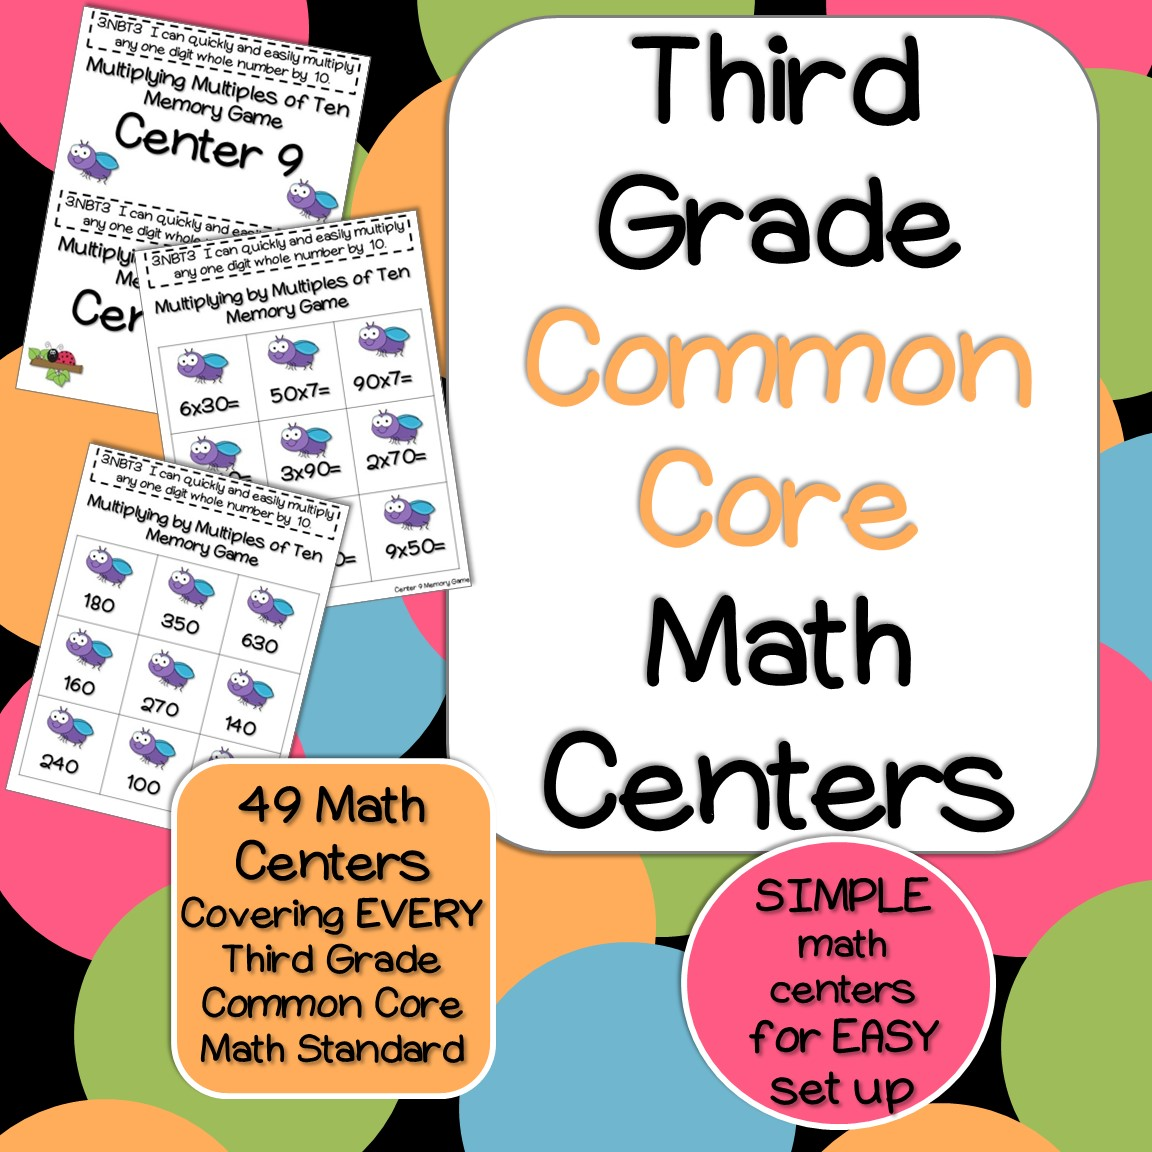 Align Your Instruction To 3rd Grade Common Core Math With